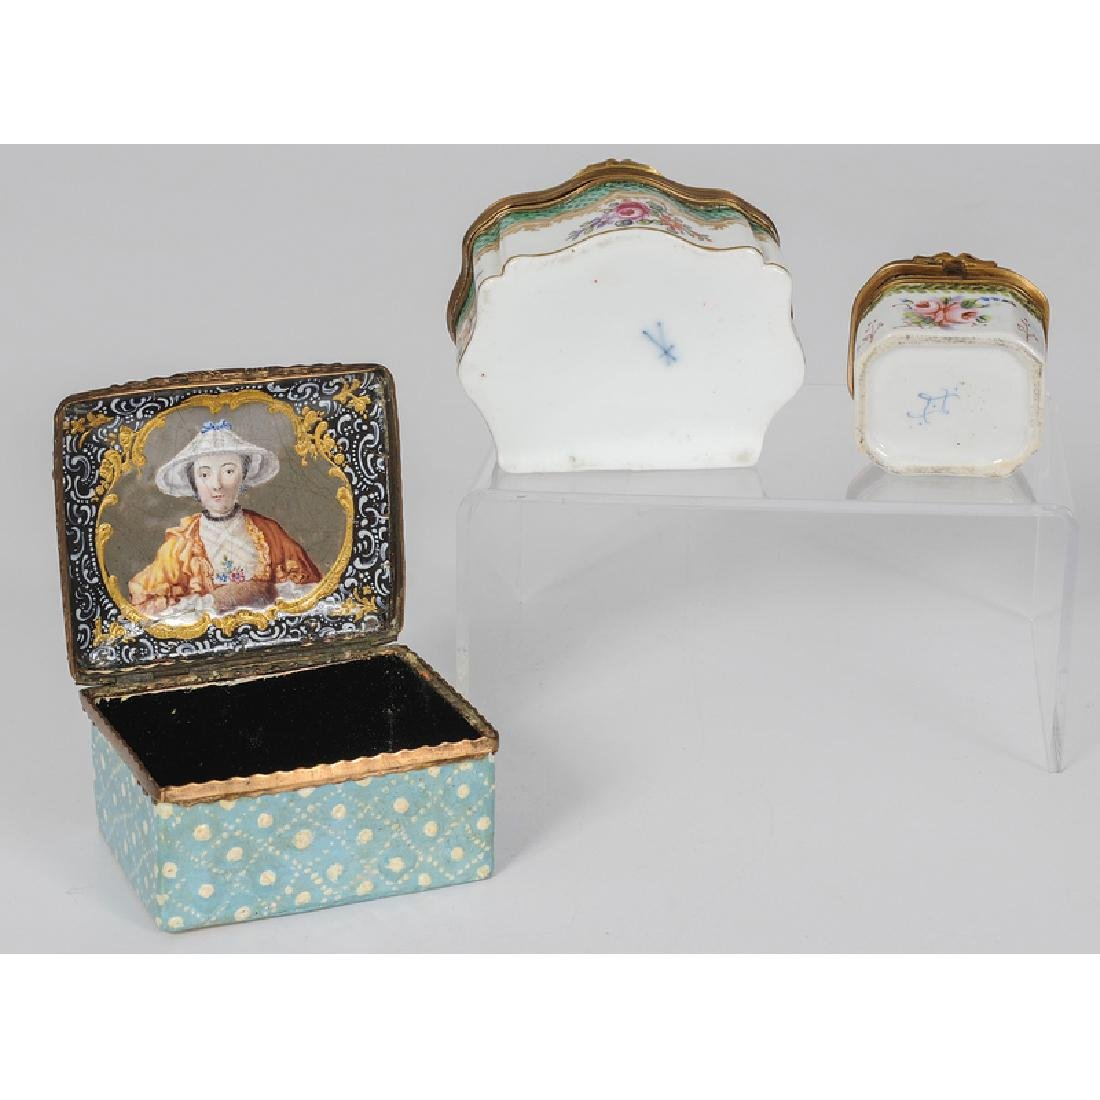 Assortment of French Porcelain and Enamel Ladies - 3